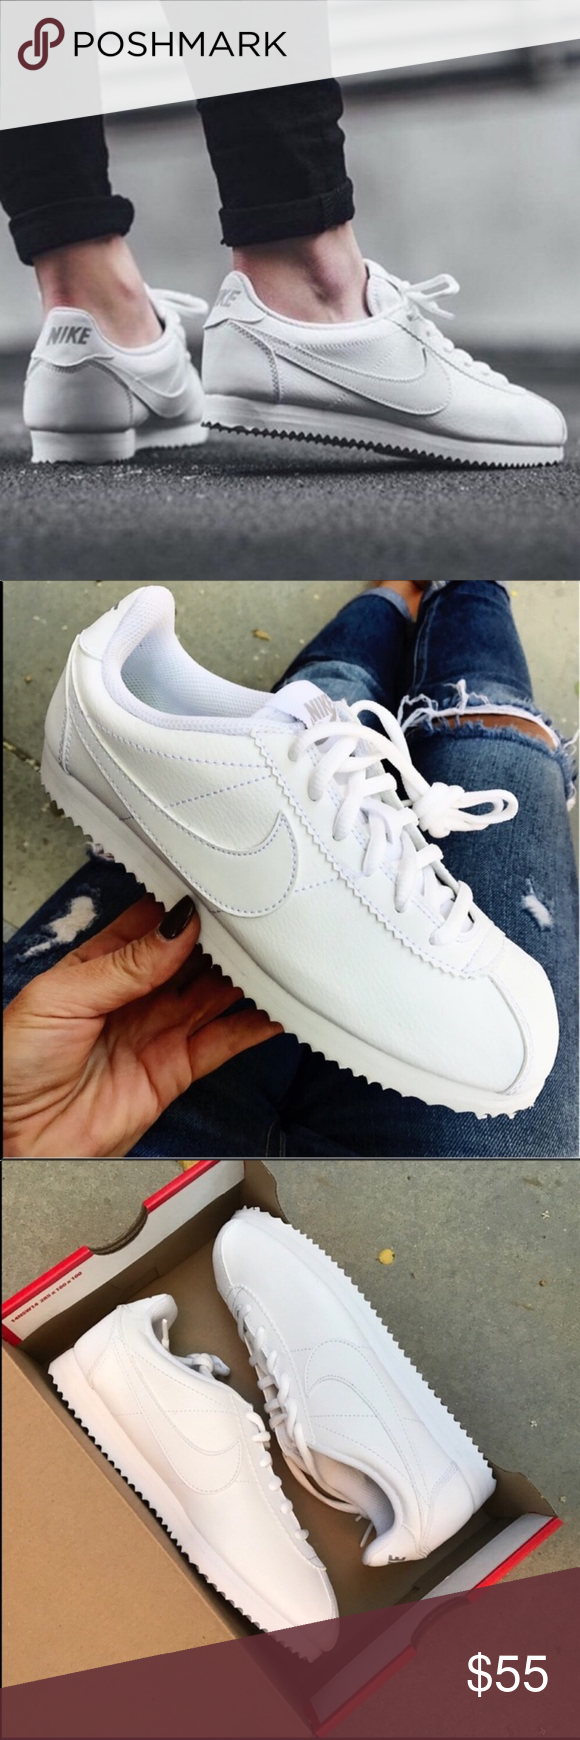 334d7a2fcb09 NWB NIKE CORTEZ TRIPLE WHITE LEATHER LAST PAIR! New never worn NIKE CLASSIC  CORTEZ